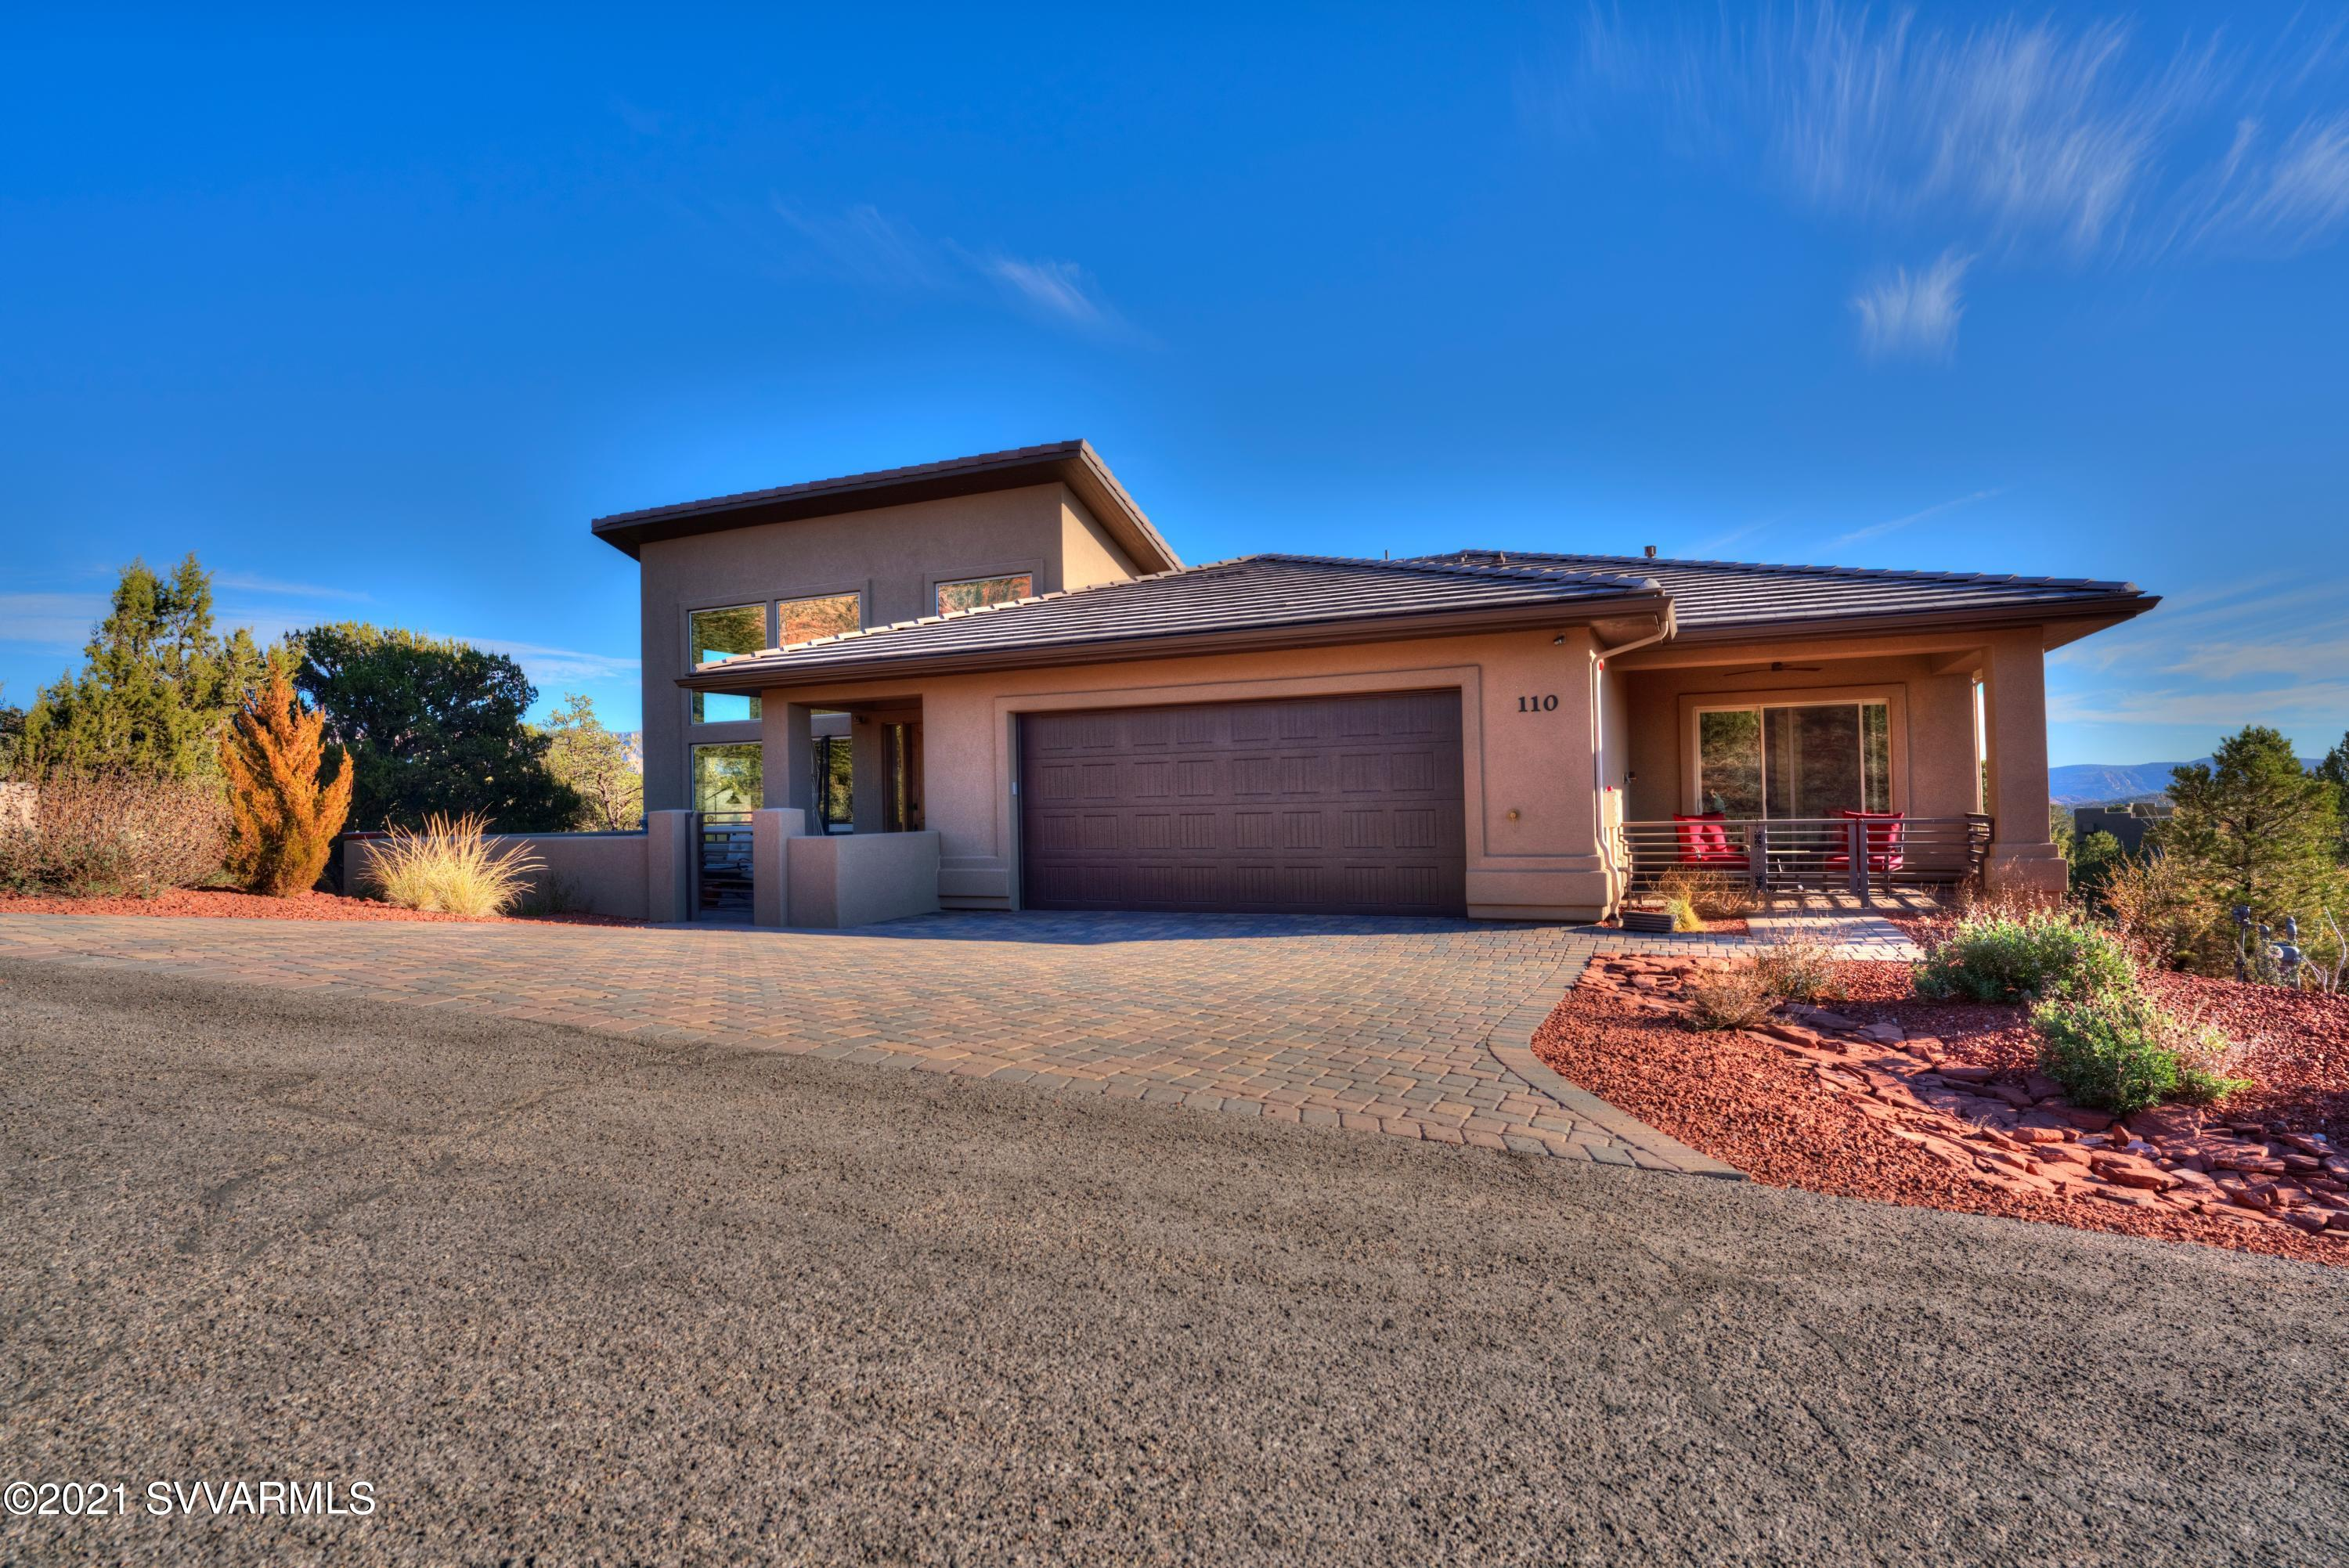 110 Painted Pony Drive Sedona, AZ 86336